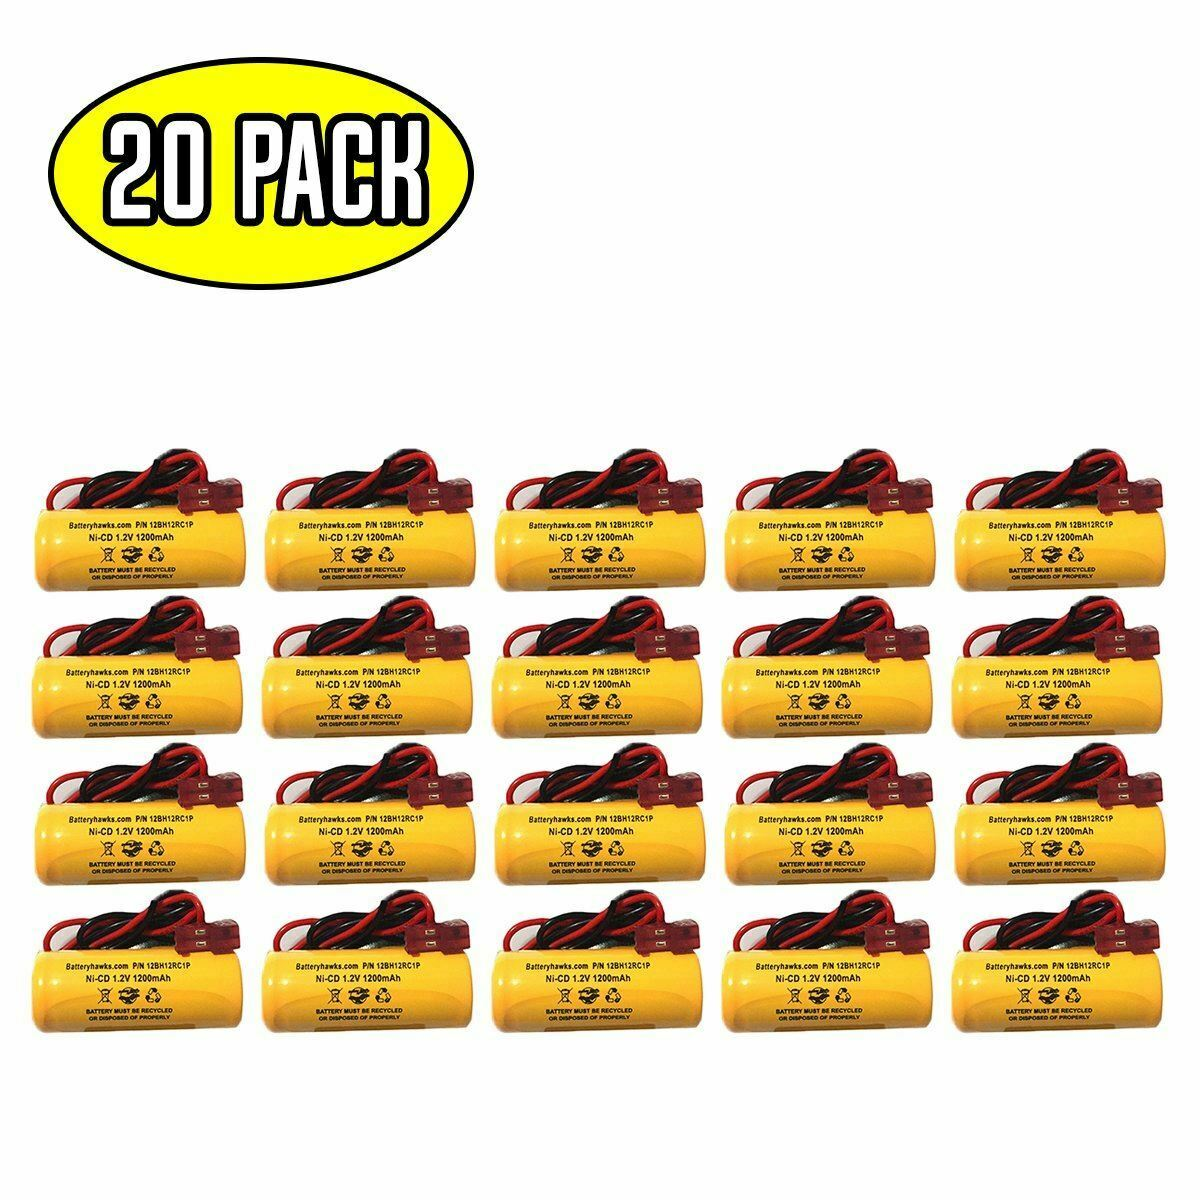 (20 pack) 1.2v 1200mAh Ni-CD Battery Pack Replacement for Emergency / Exit Light